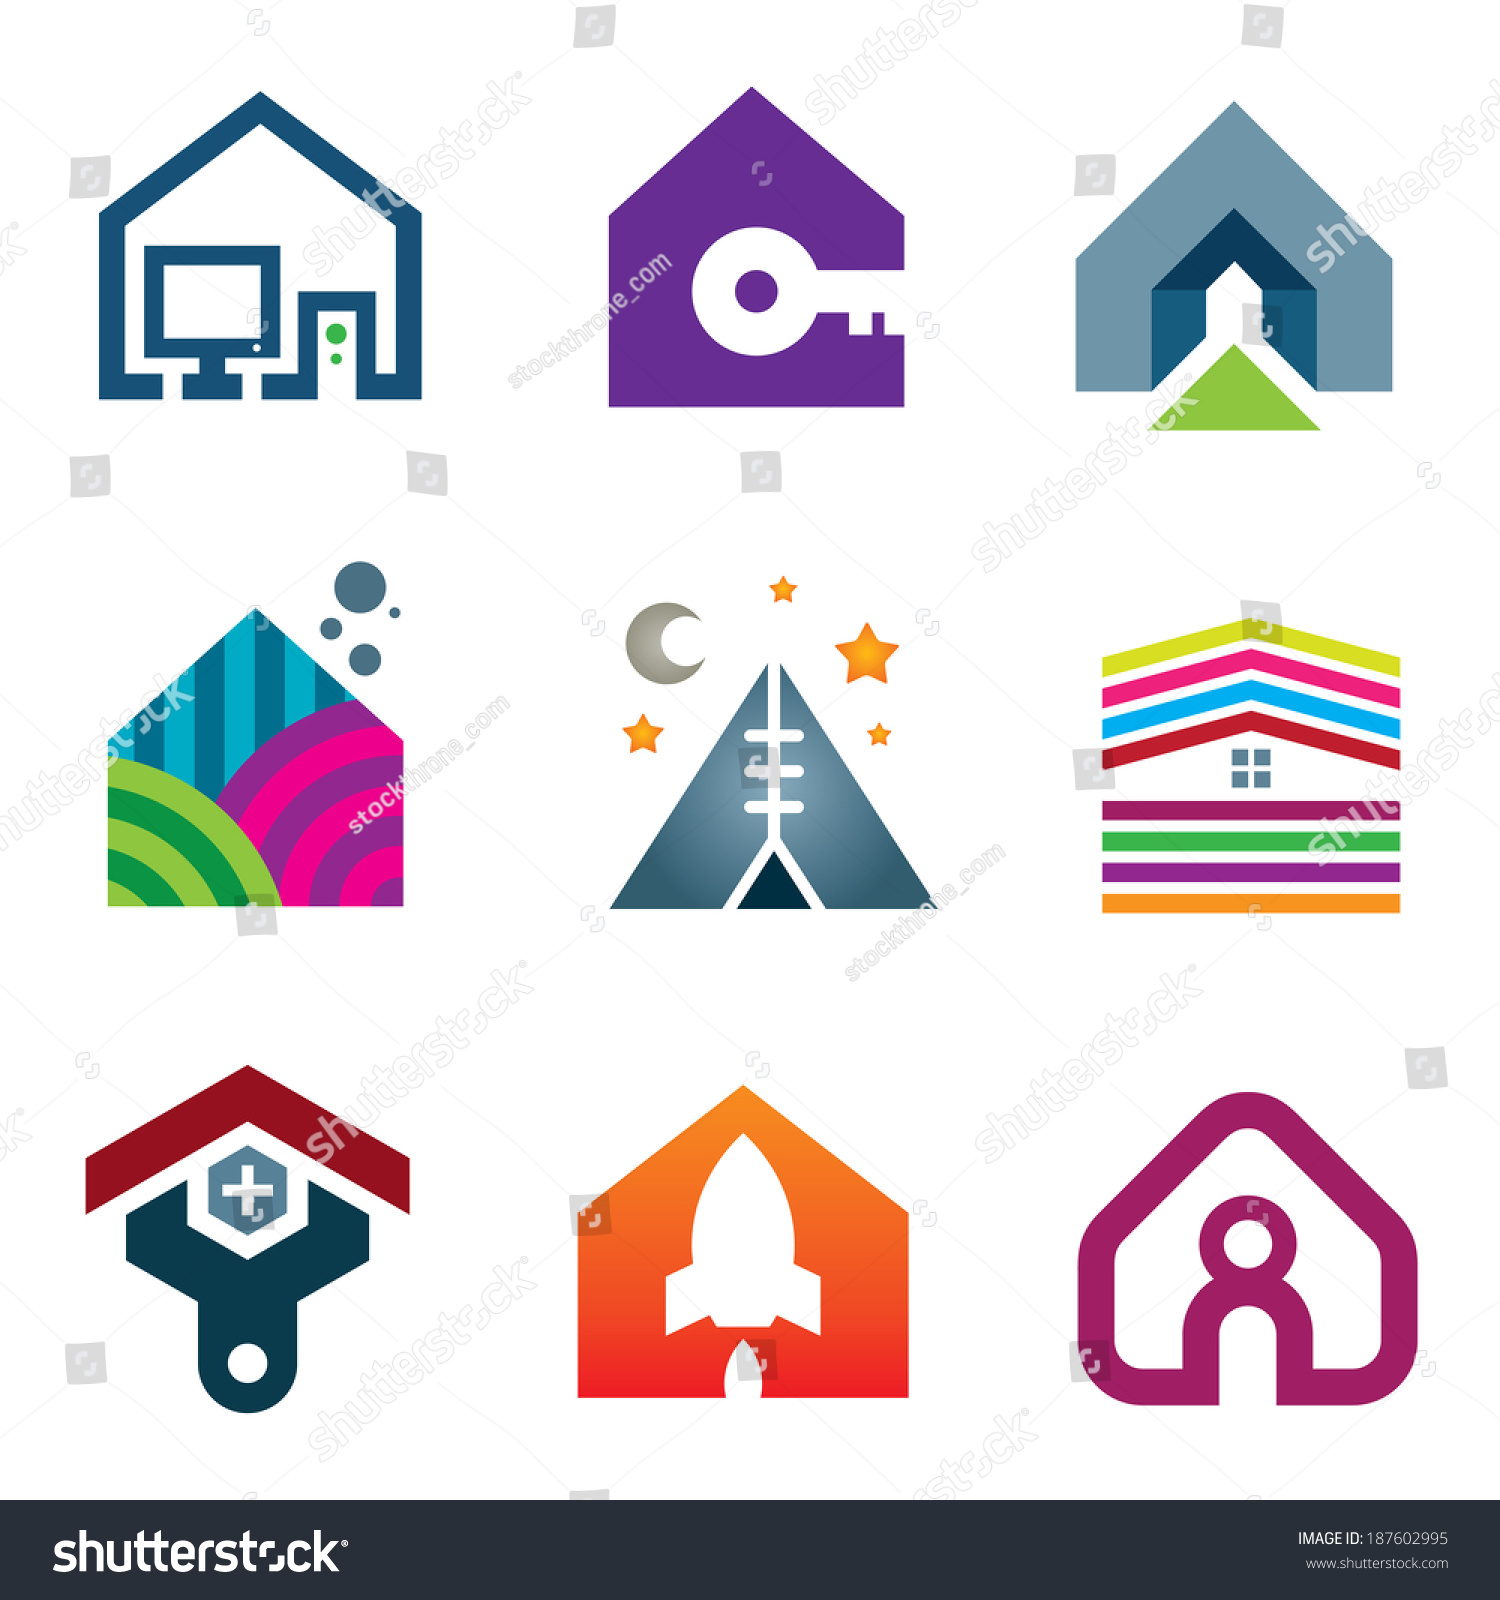 Beautiful modern house creative ideas construction stock for Modern house logo